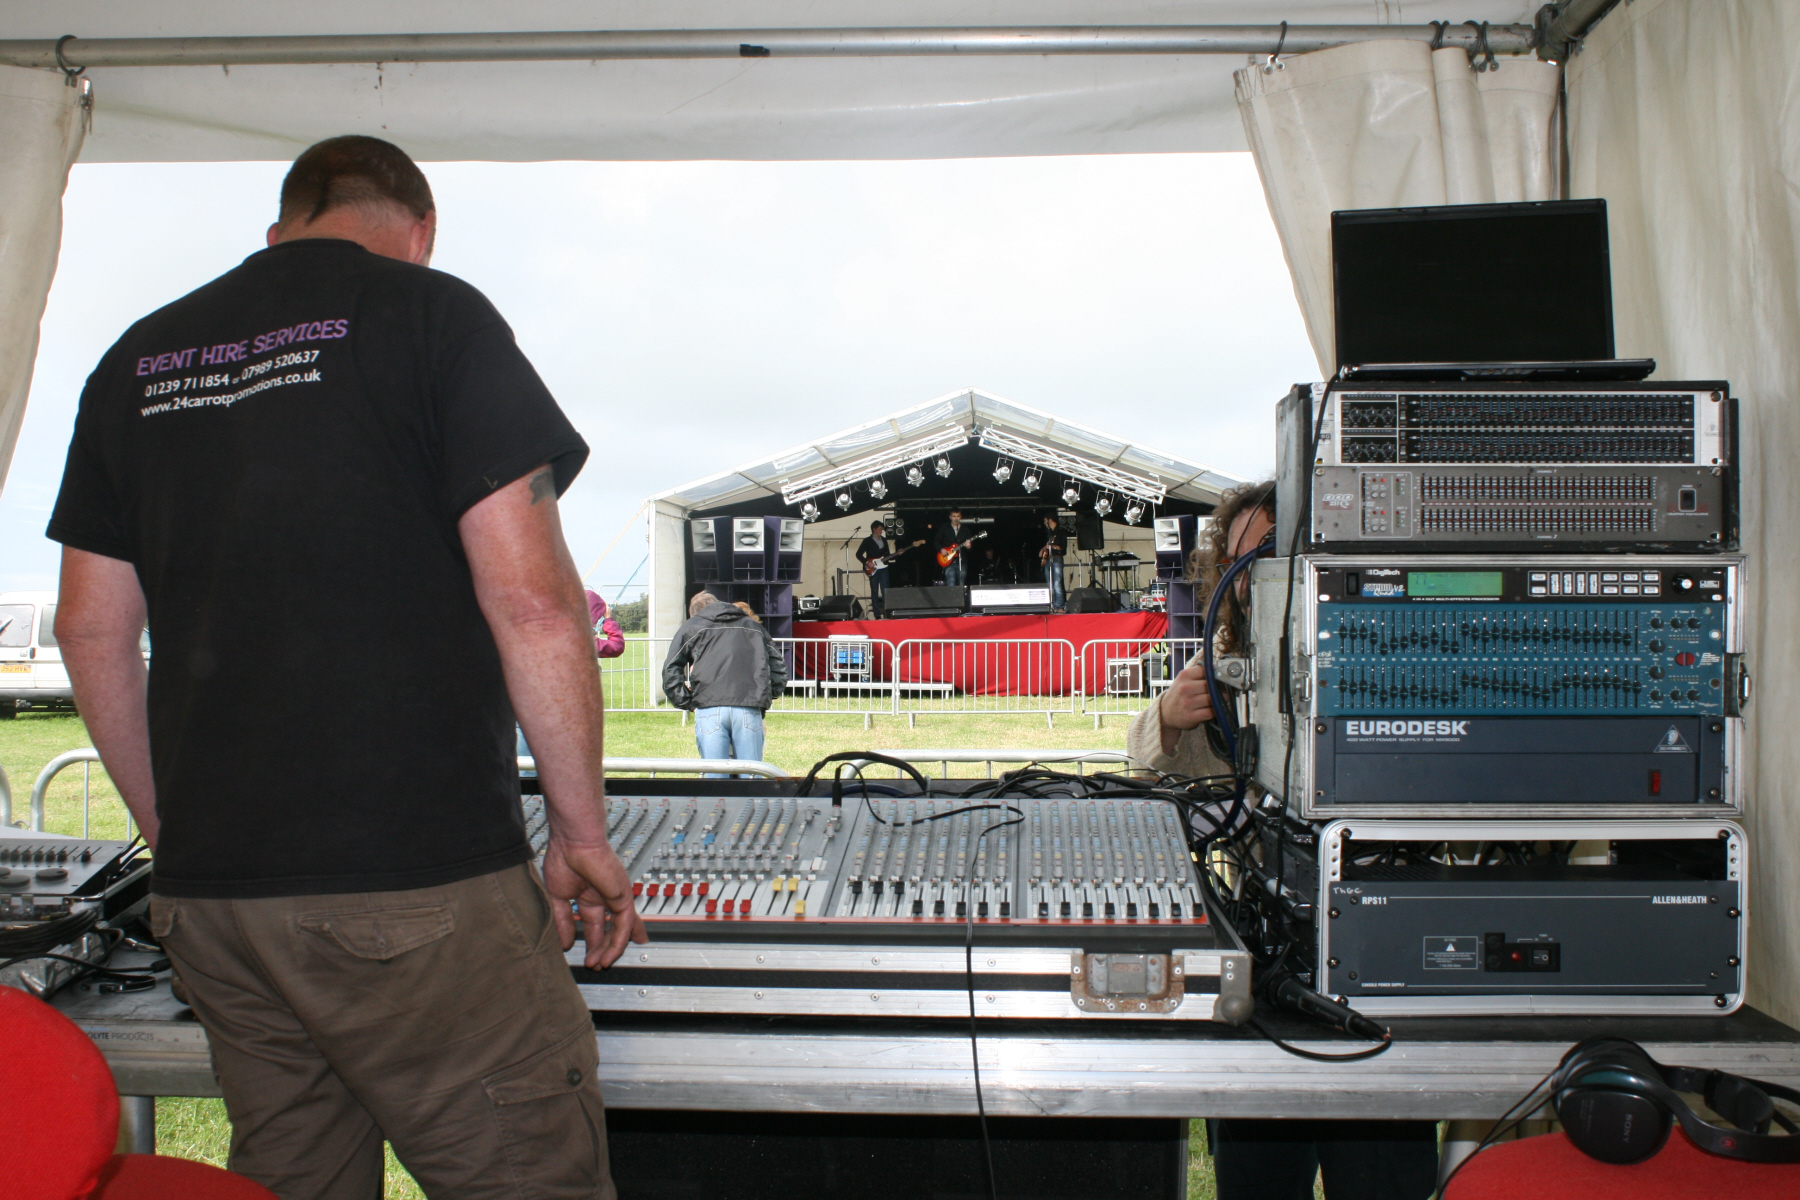 Outdoor stage at Cardigan Festival